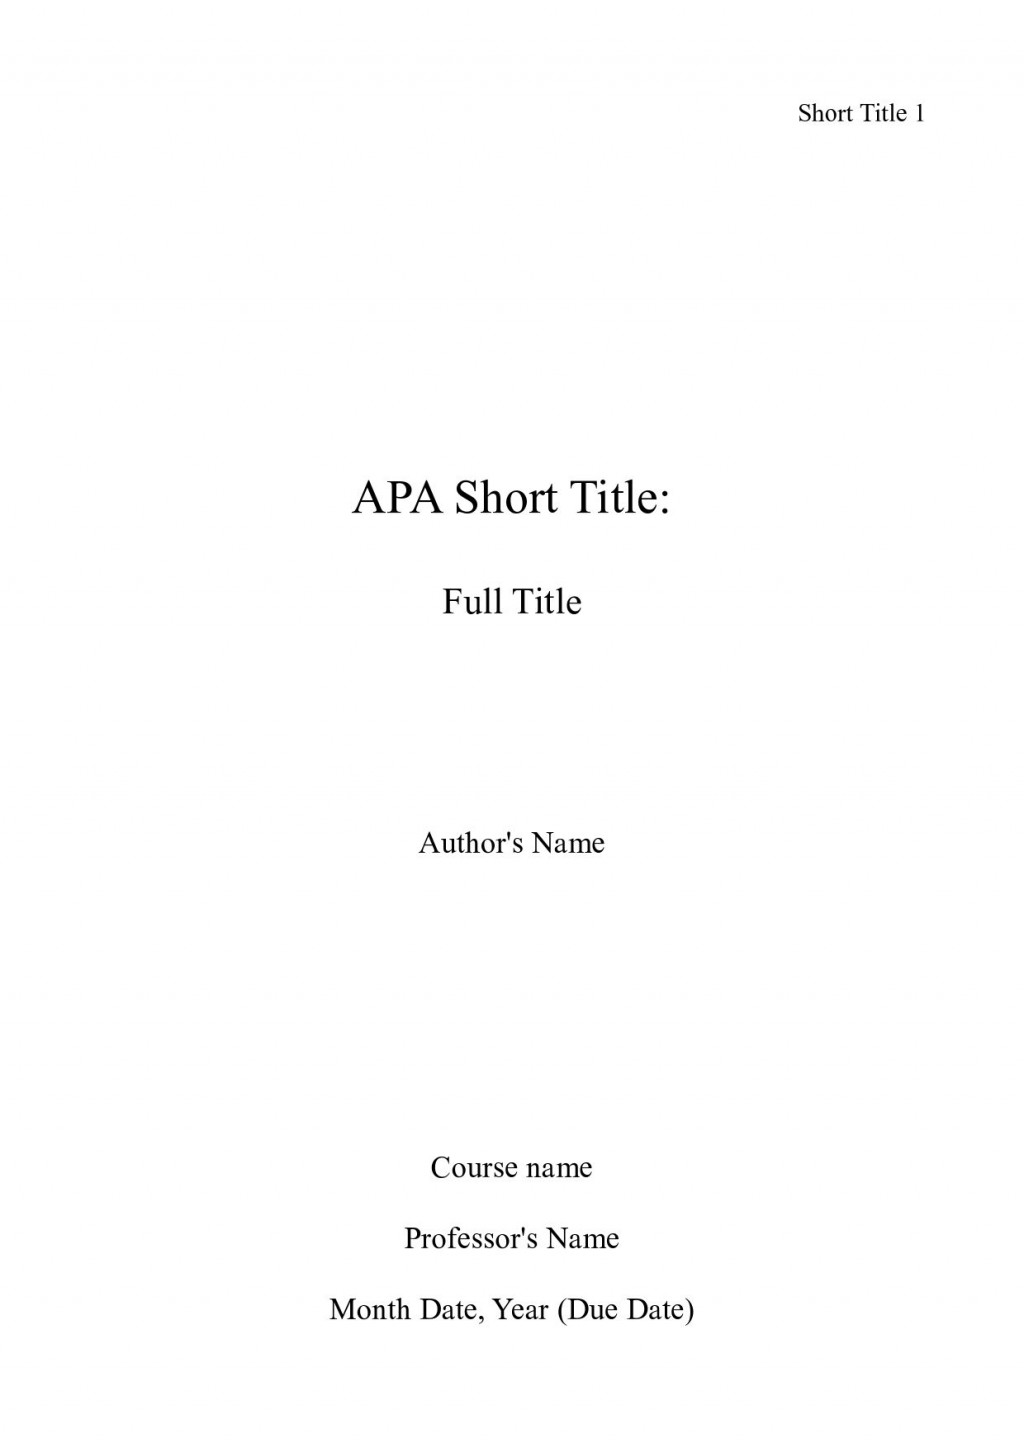 001 Essay Cover Page Apa Example Impressive Correct Title Proper Format Large